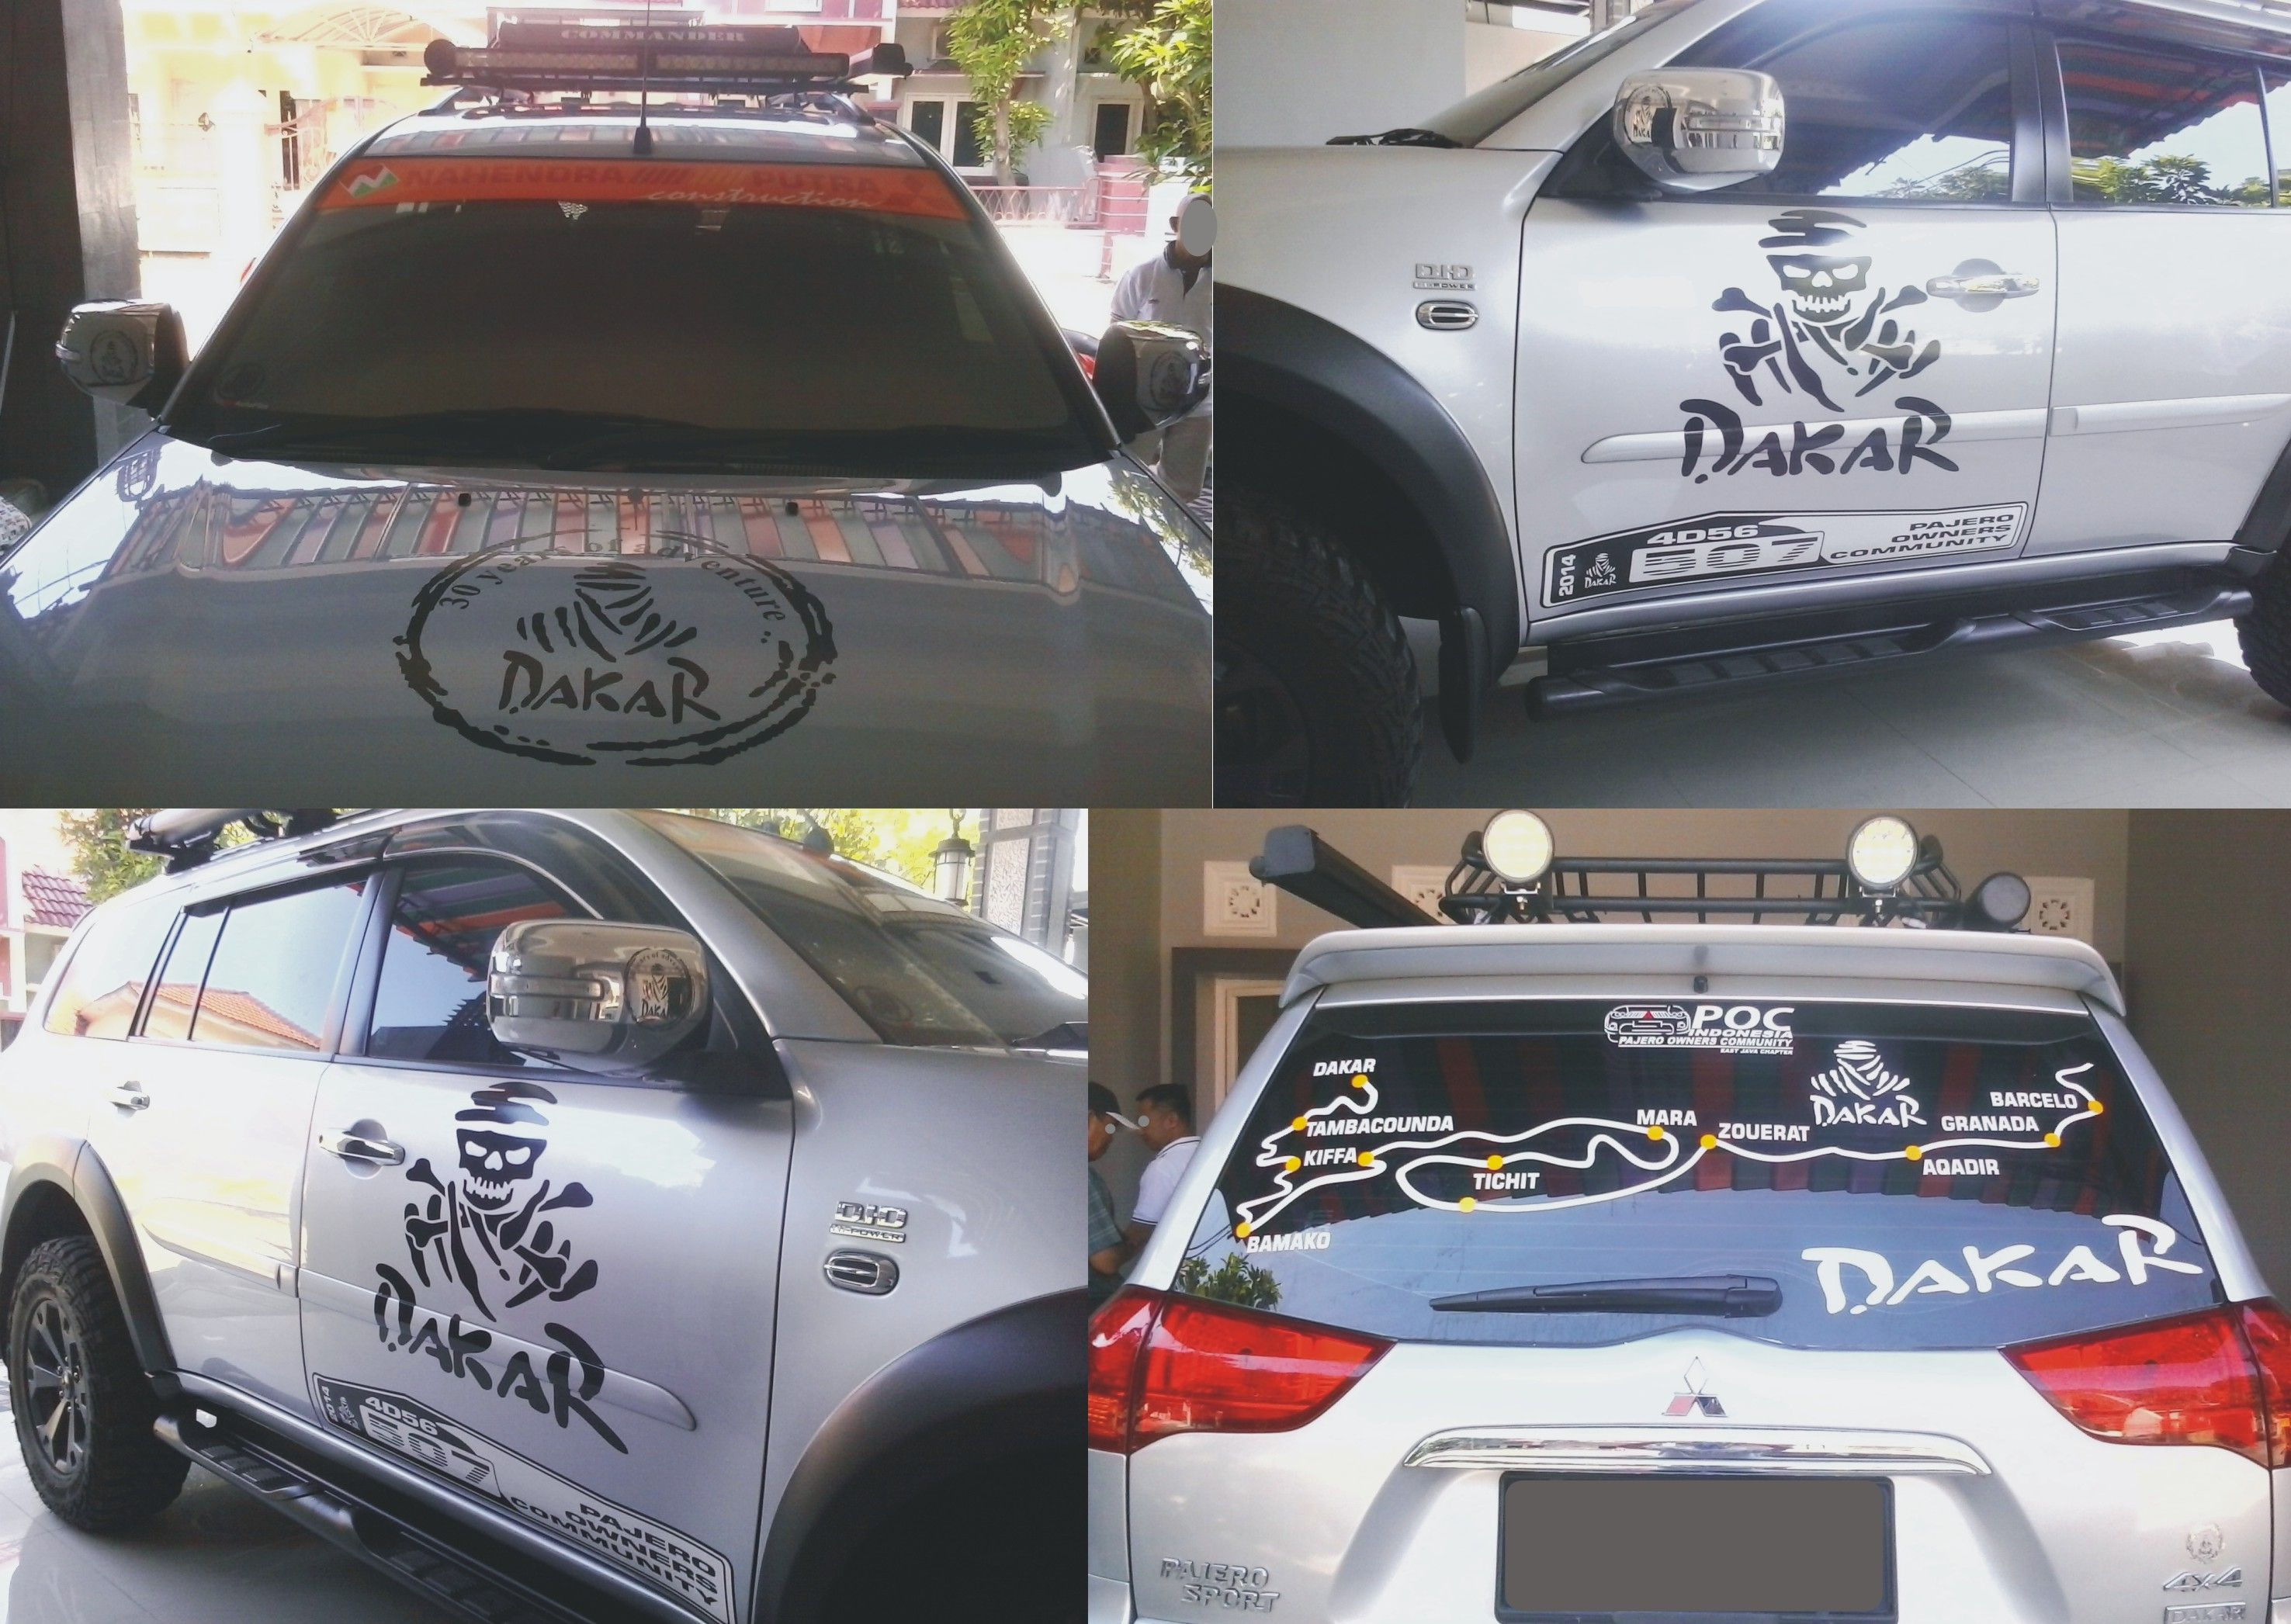 Mitsubishi pajero dakar silver dakar custom sticker custom stickers car stickers mitsubishi pajero